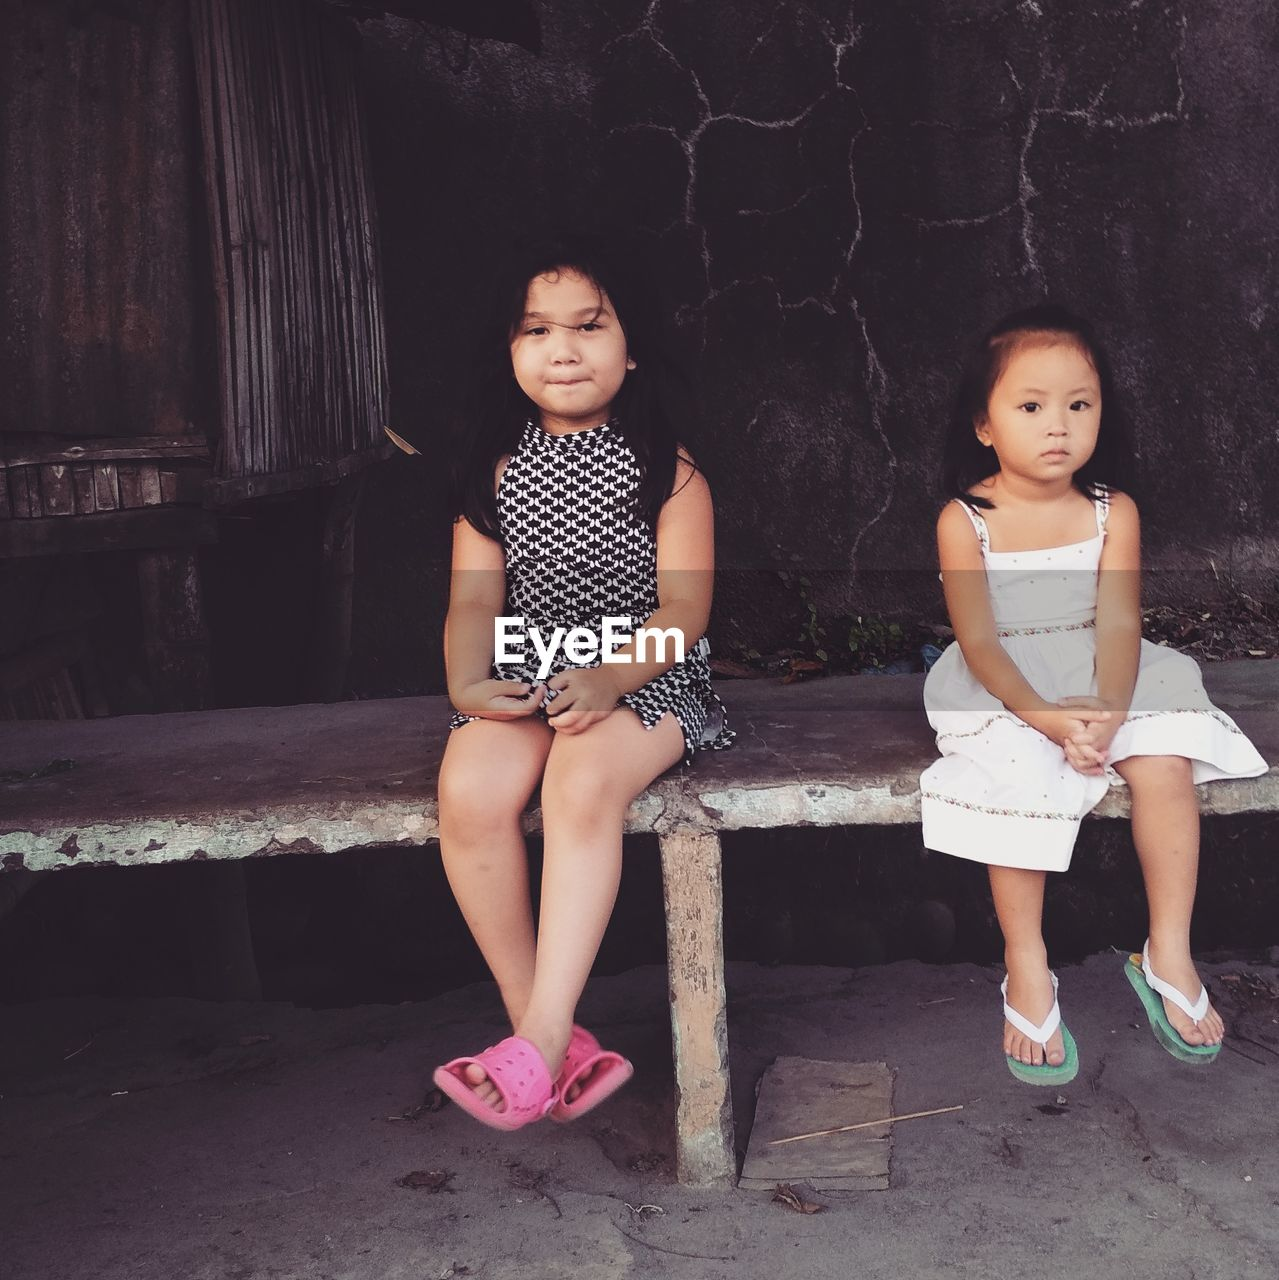 childhood, girls, child, females, full length, women, casual clothing, real people, front view, sister, sibling, looking at camera, portrait, sitting, family, people, two people, togetherness, standing, innocence